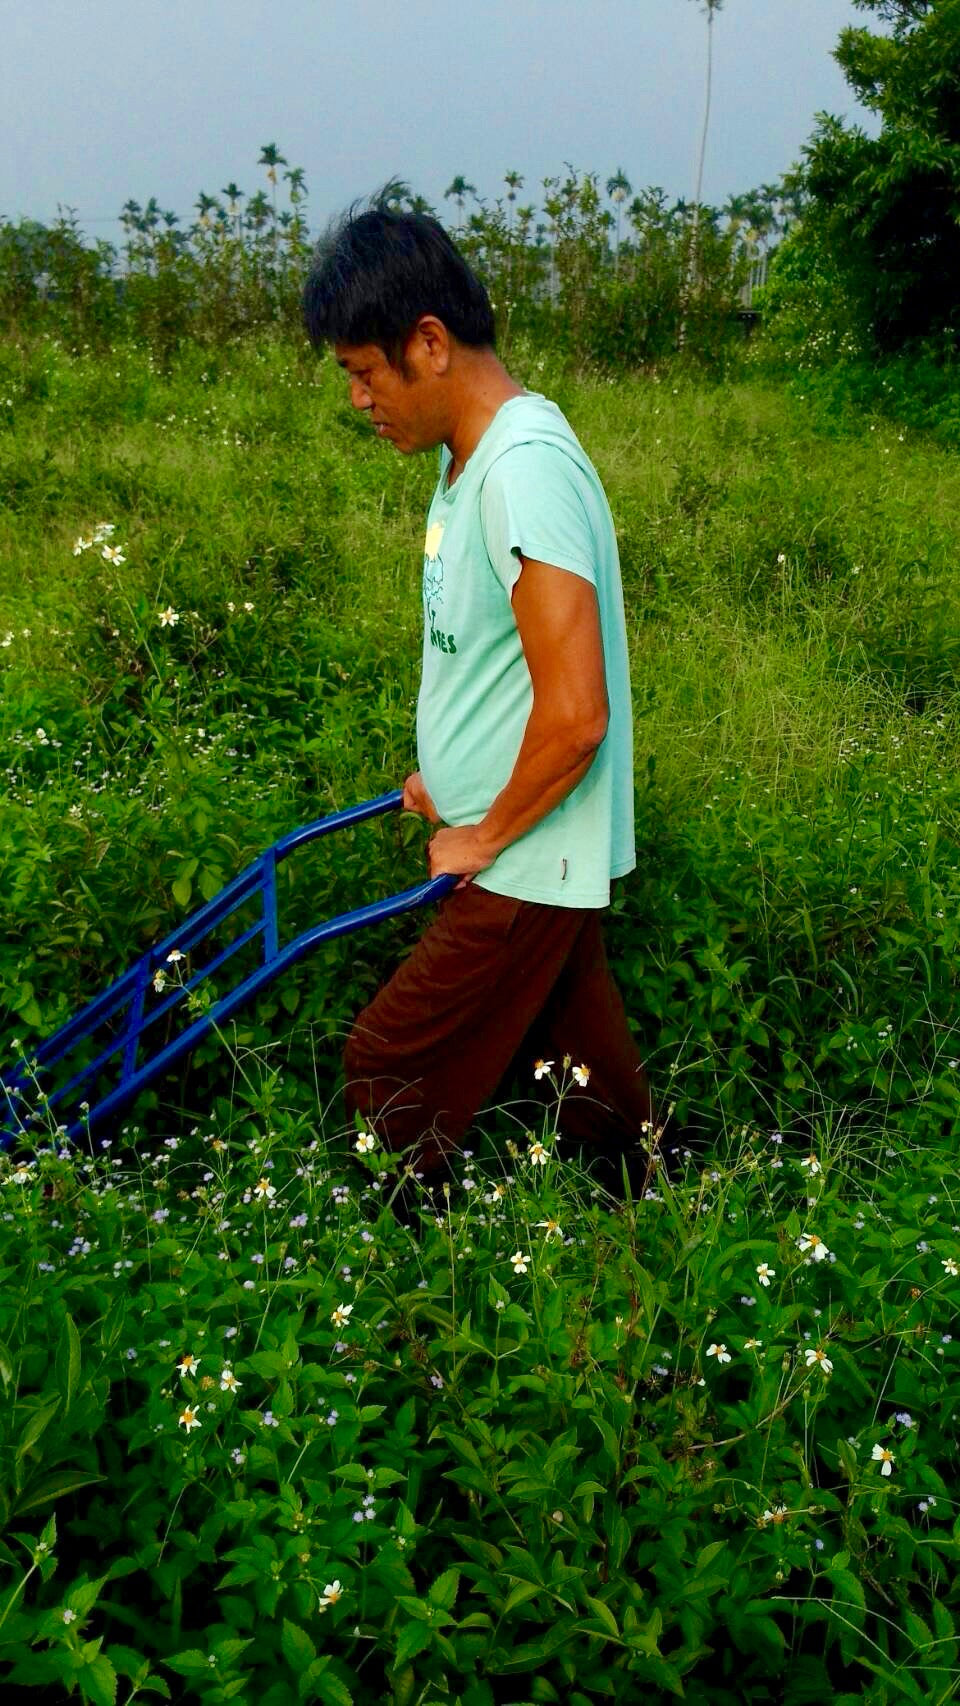 Innovative natural farming methods of pushing down weeds instead of cutting our pulling them